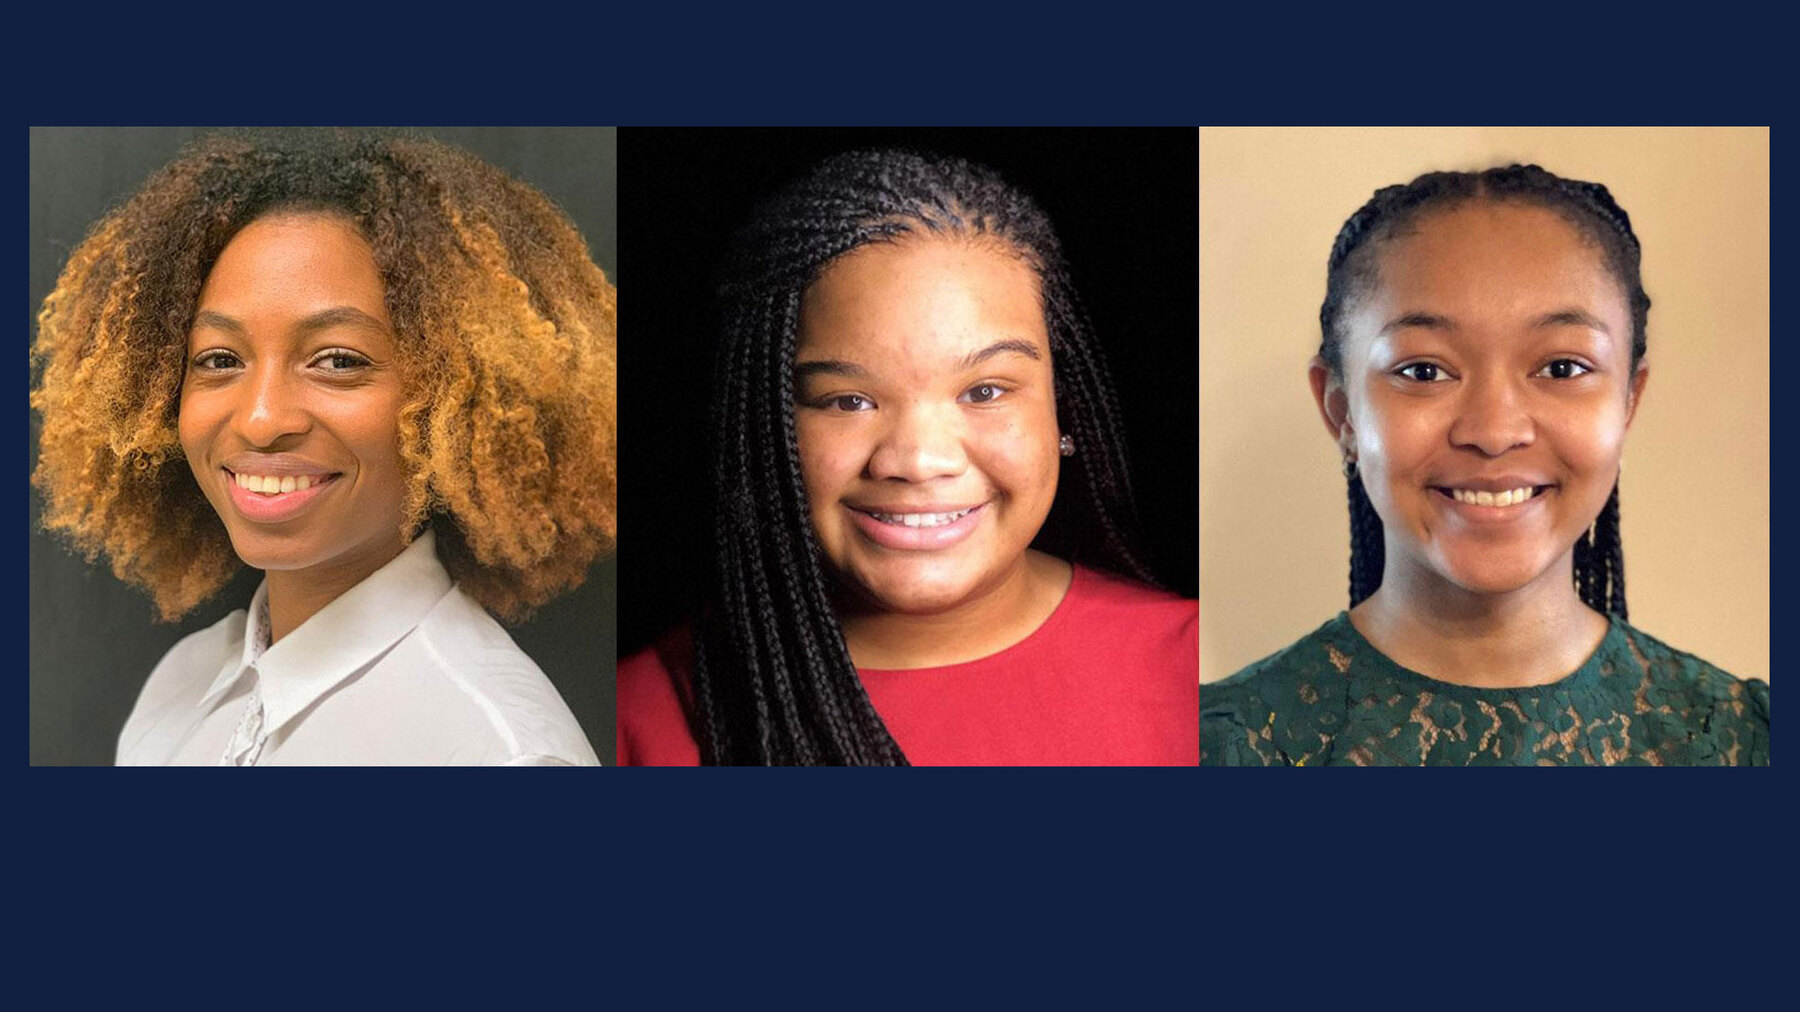 Fisk undergraduate students (L-R) Skye Faucher, Jaia Holleman, and Leiana-Lavette Woodard participated in summer training workshops at University of Illinois Urbana-Champaign. No photo credits available.